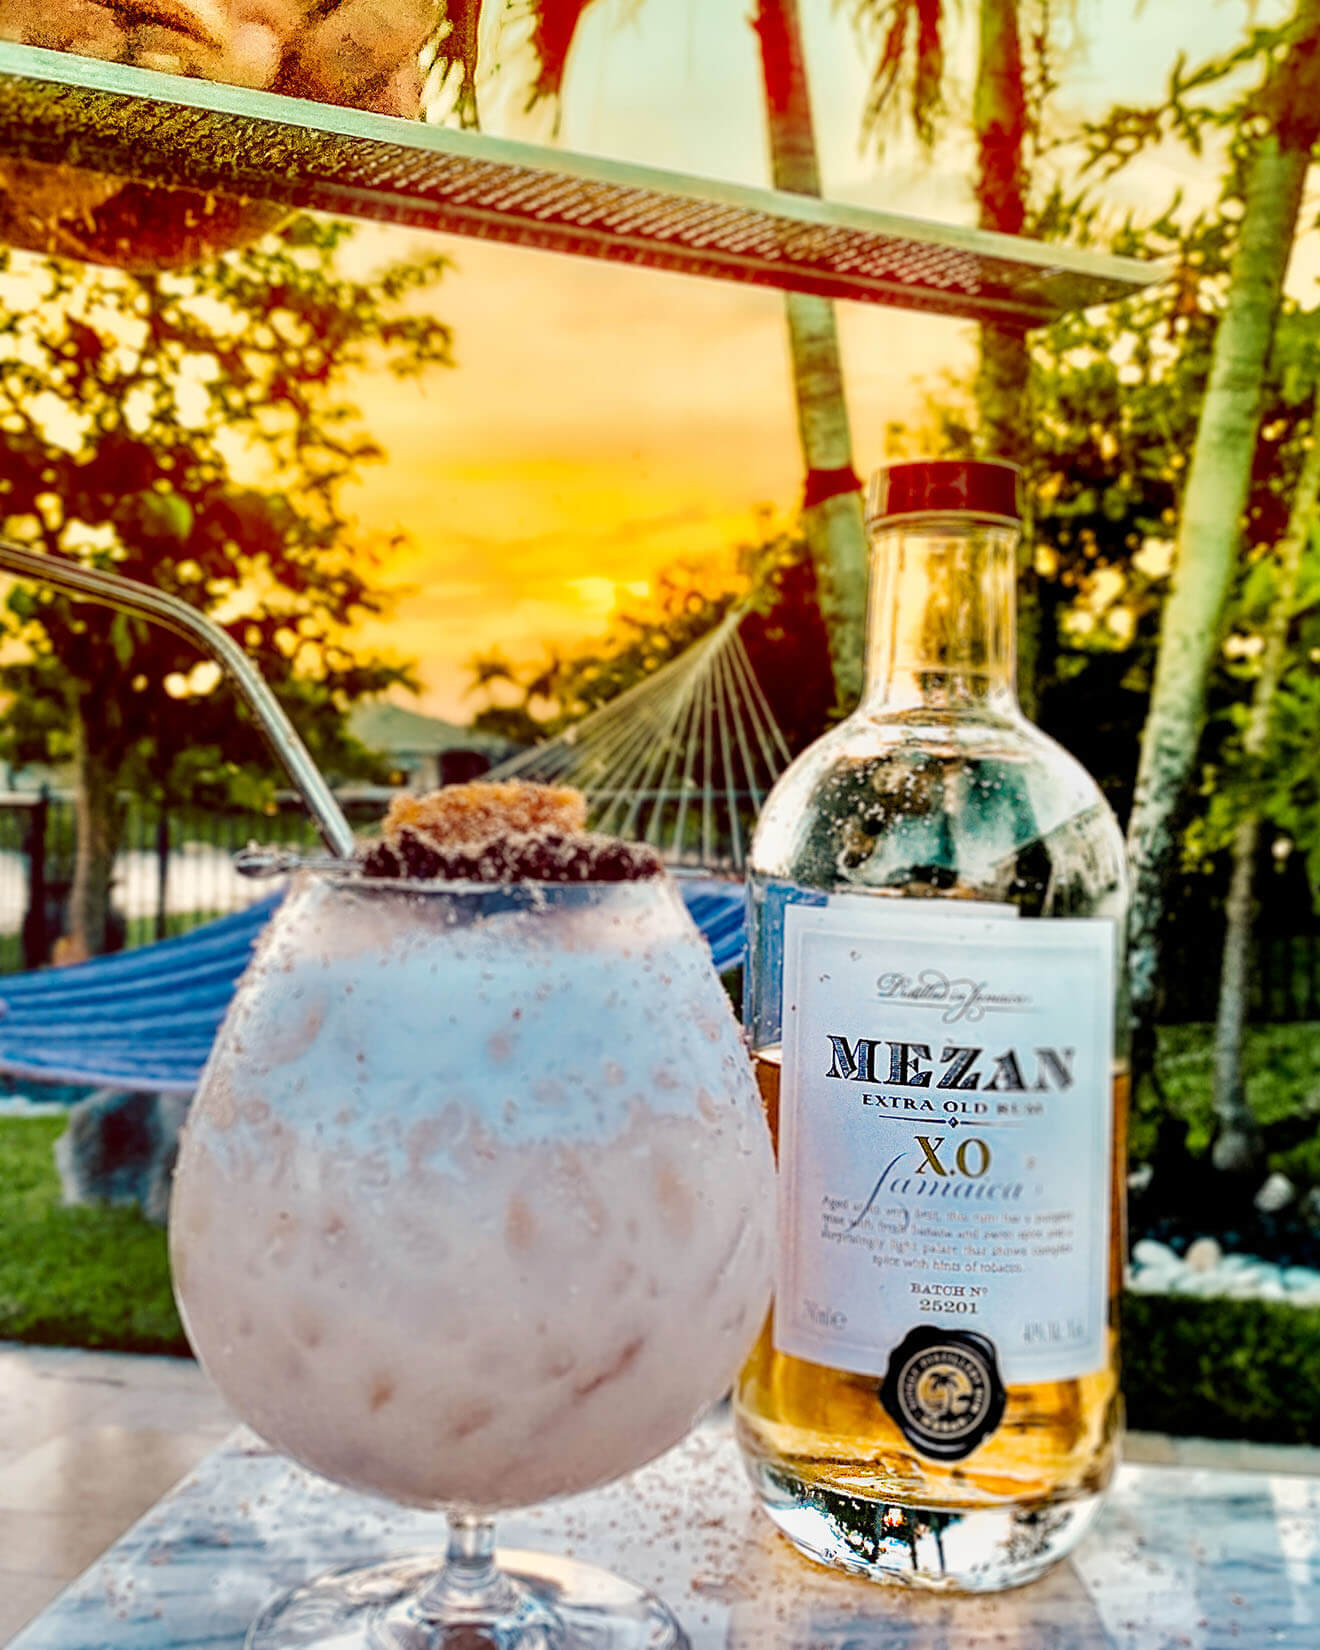 R & R, cocktail and mexan xo rum bottle, tropical background